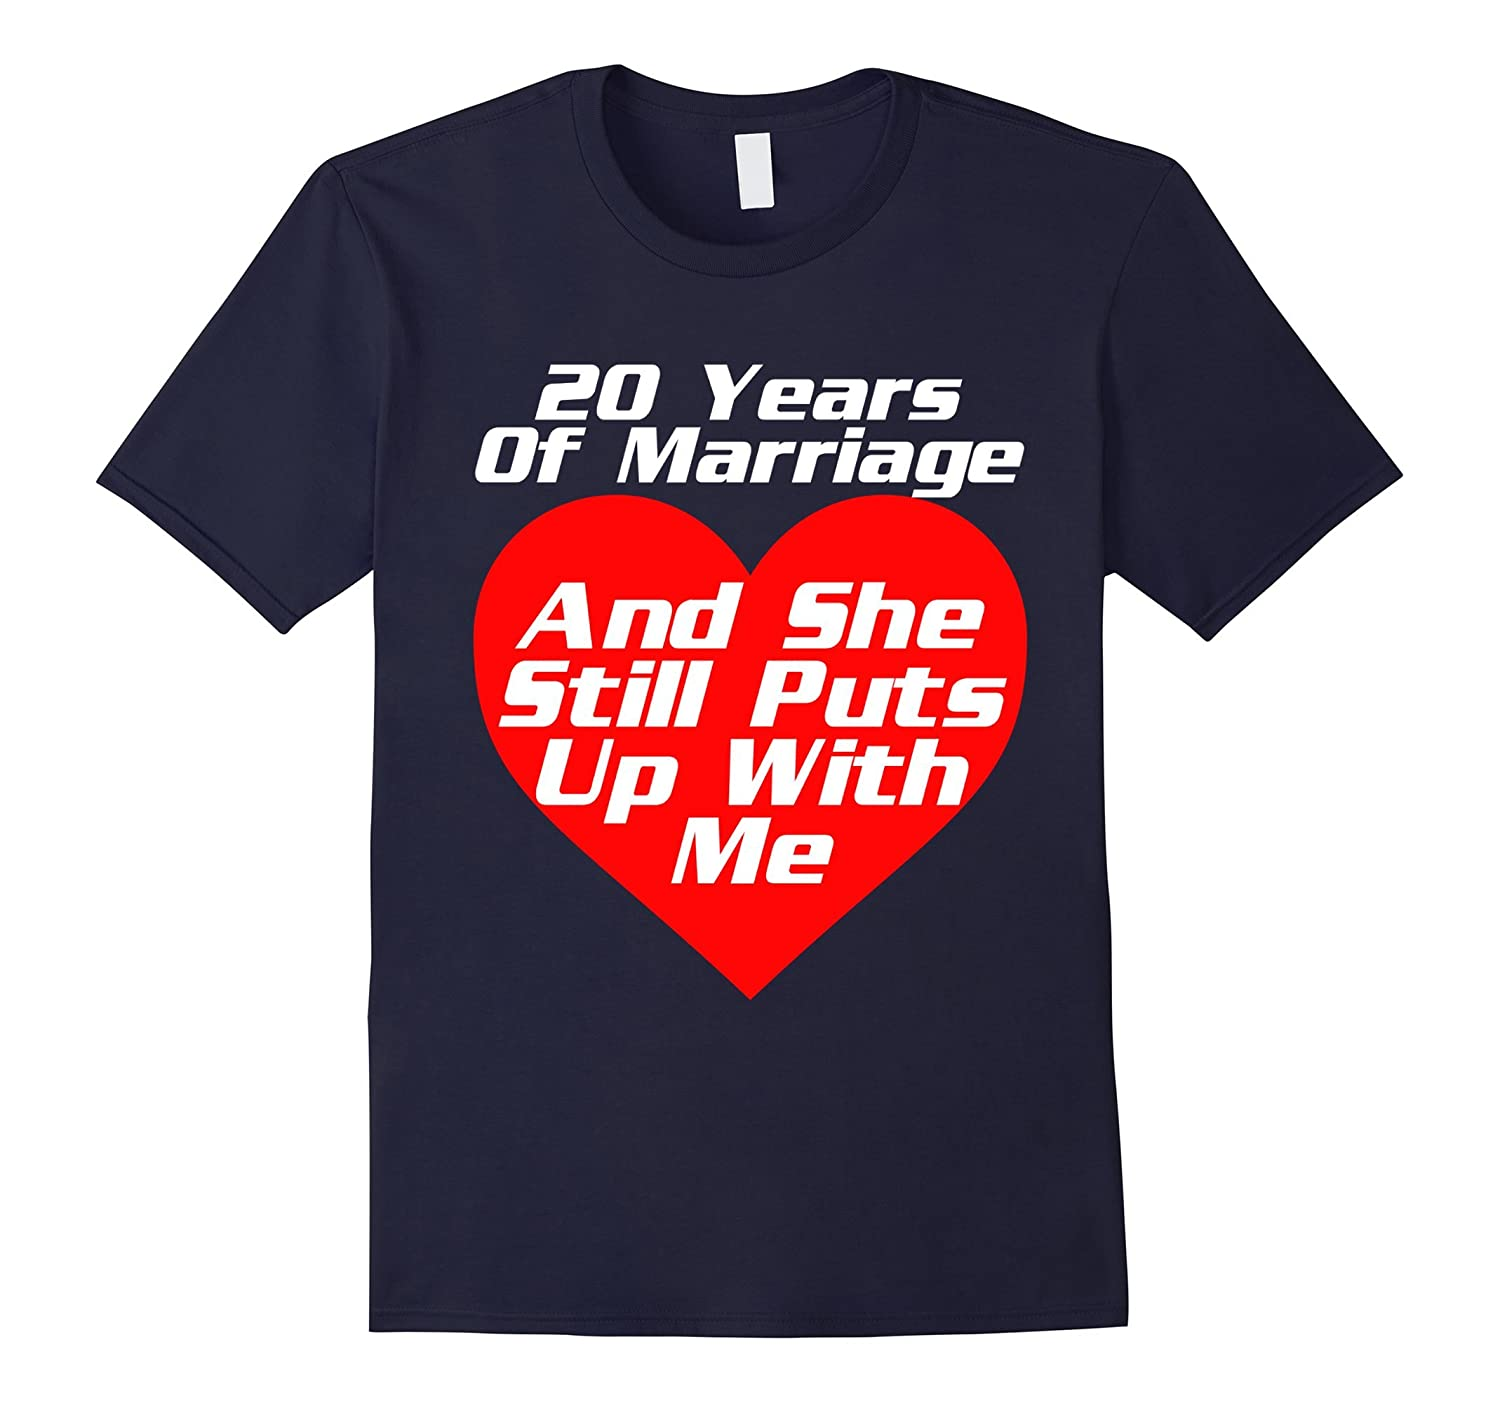 20 Years of Marriage She Still Puts Up With Me Shirt Wedding-CD